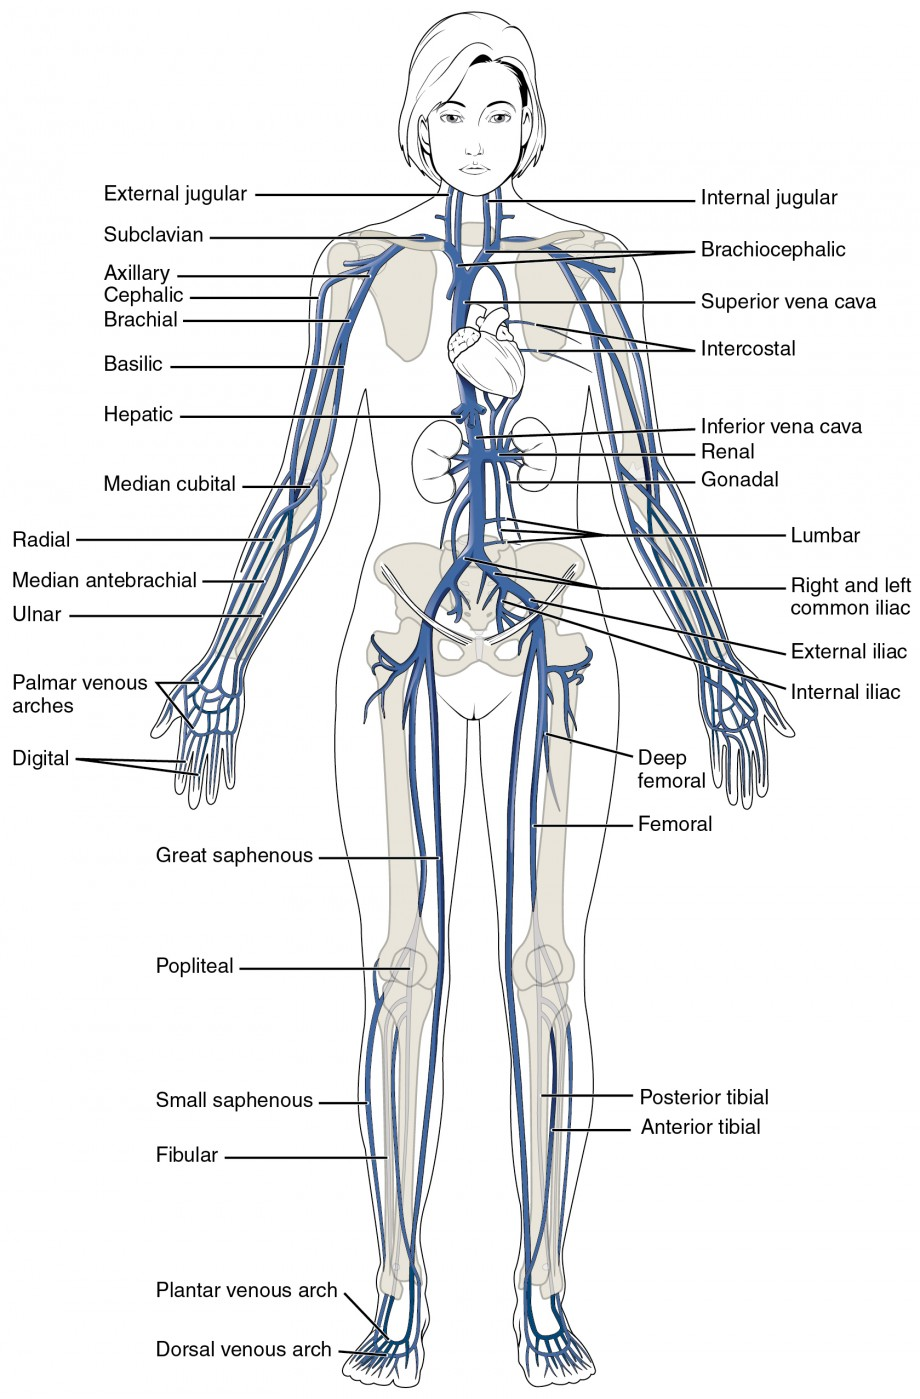 This diagram shows the major veins in the human body.